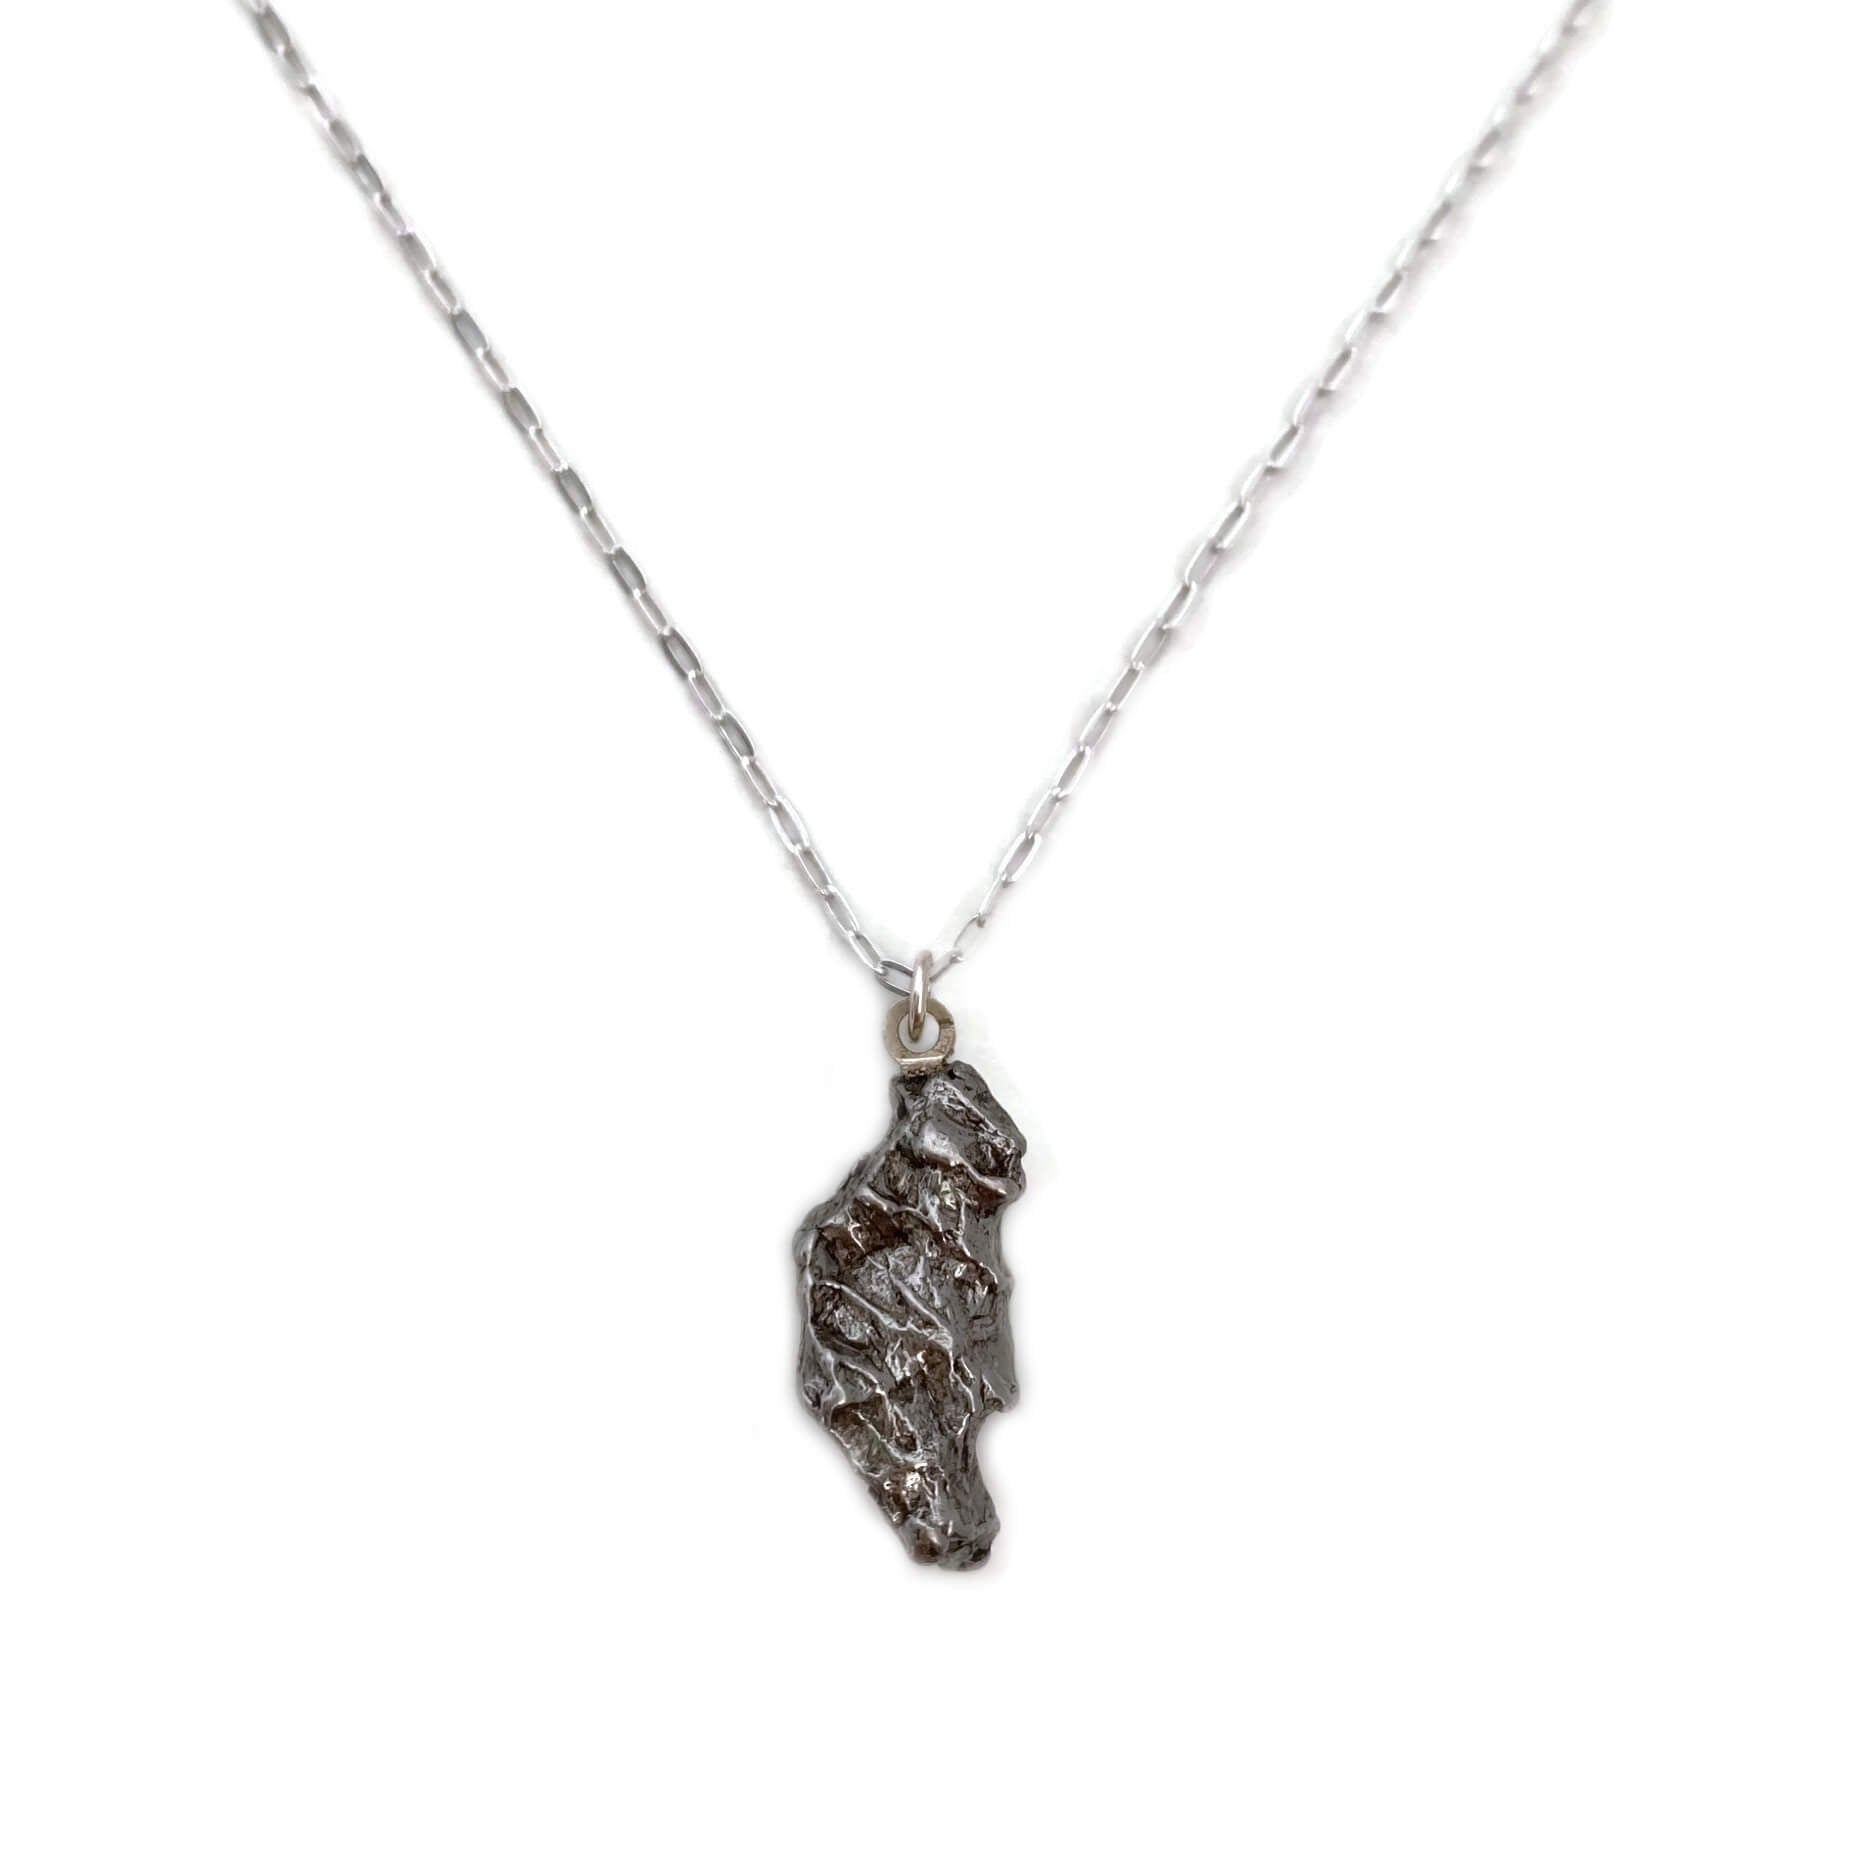 This meteorite necklace is made from a genuine piece of meteorite that crashed to earth near a place called Campo del Cielo in Argentina.  Studies have shown that the meteorite fell to earth around 4,500 years ago in South America.